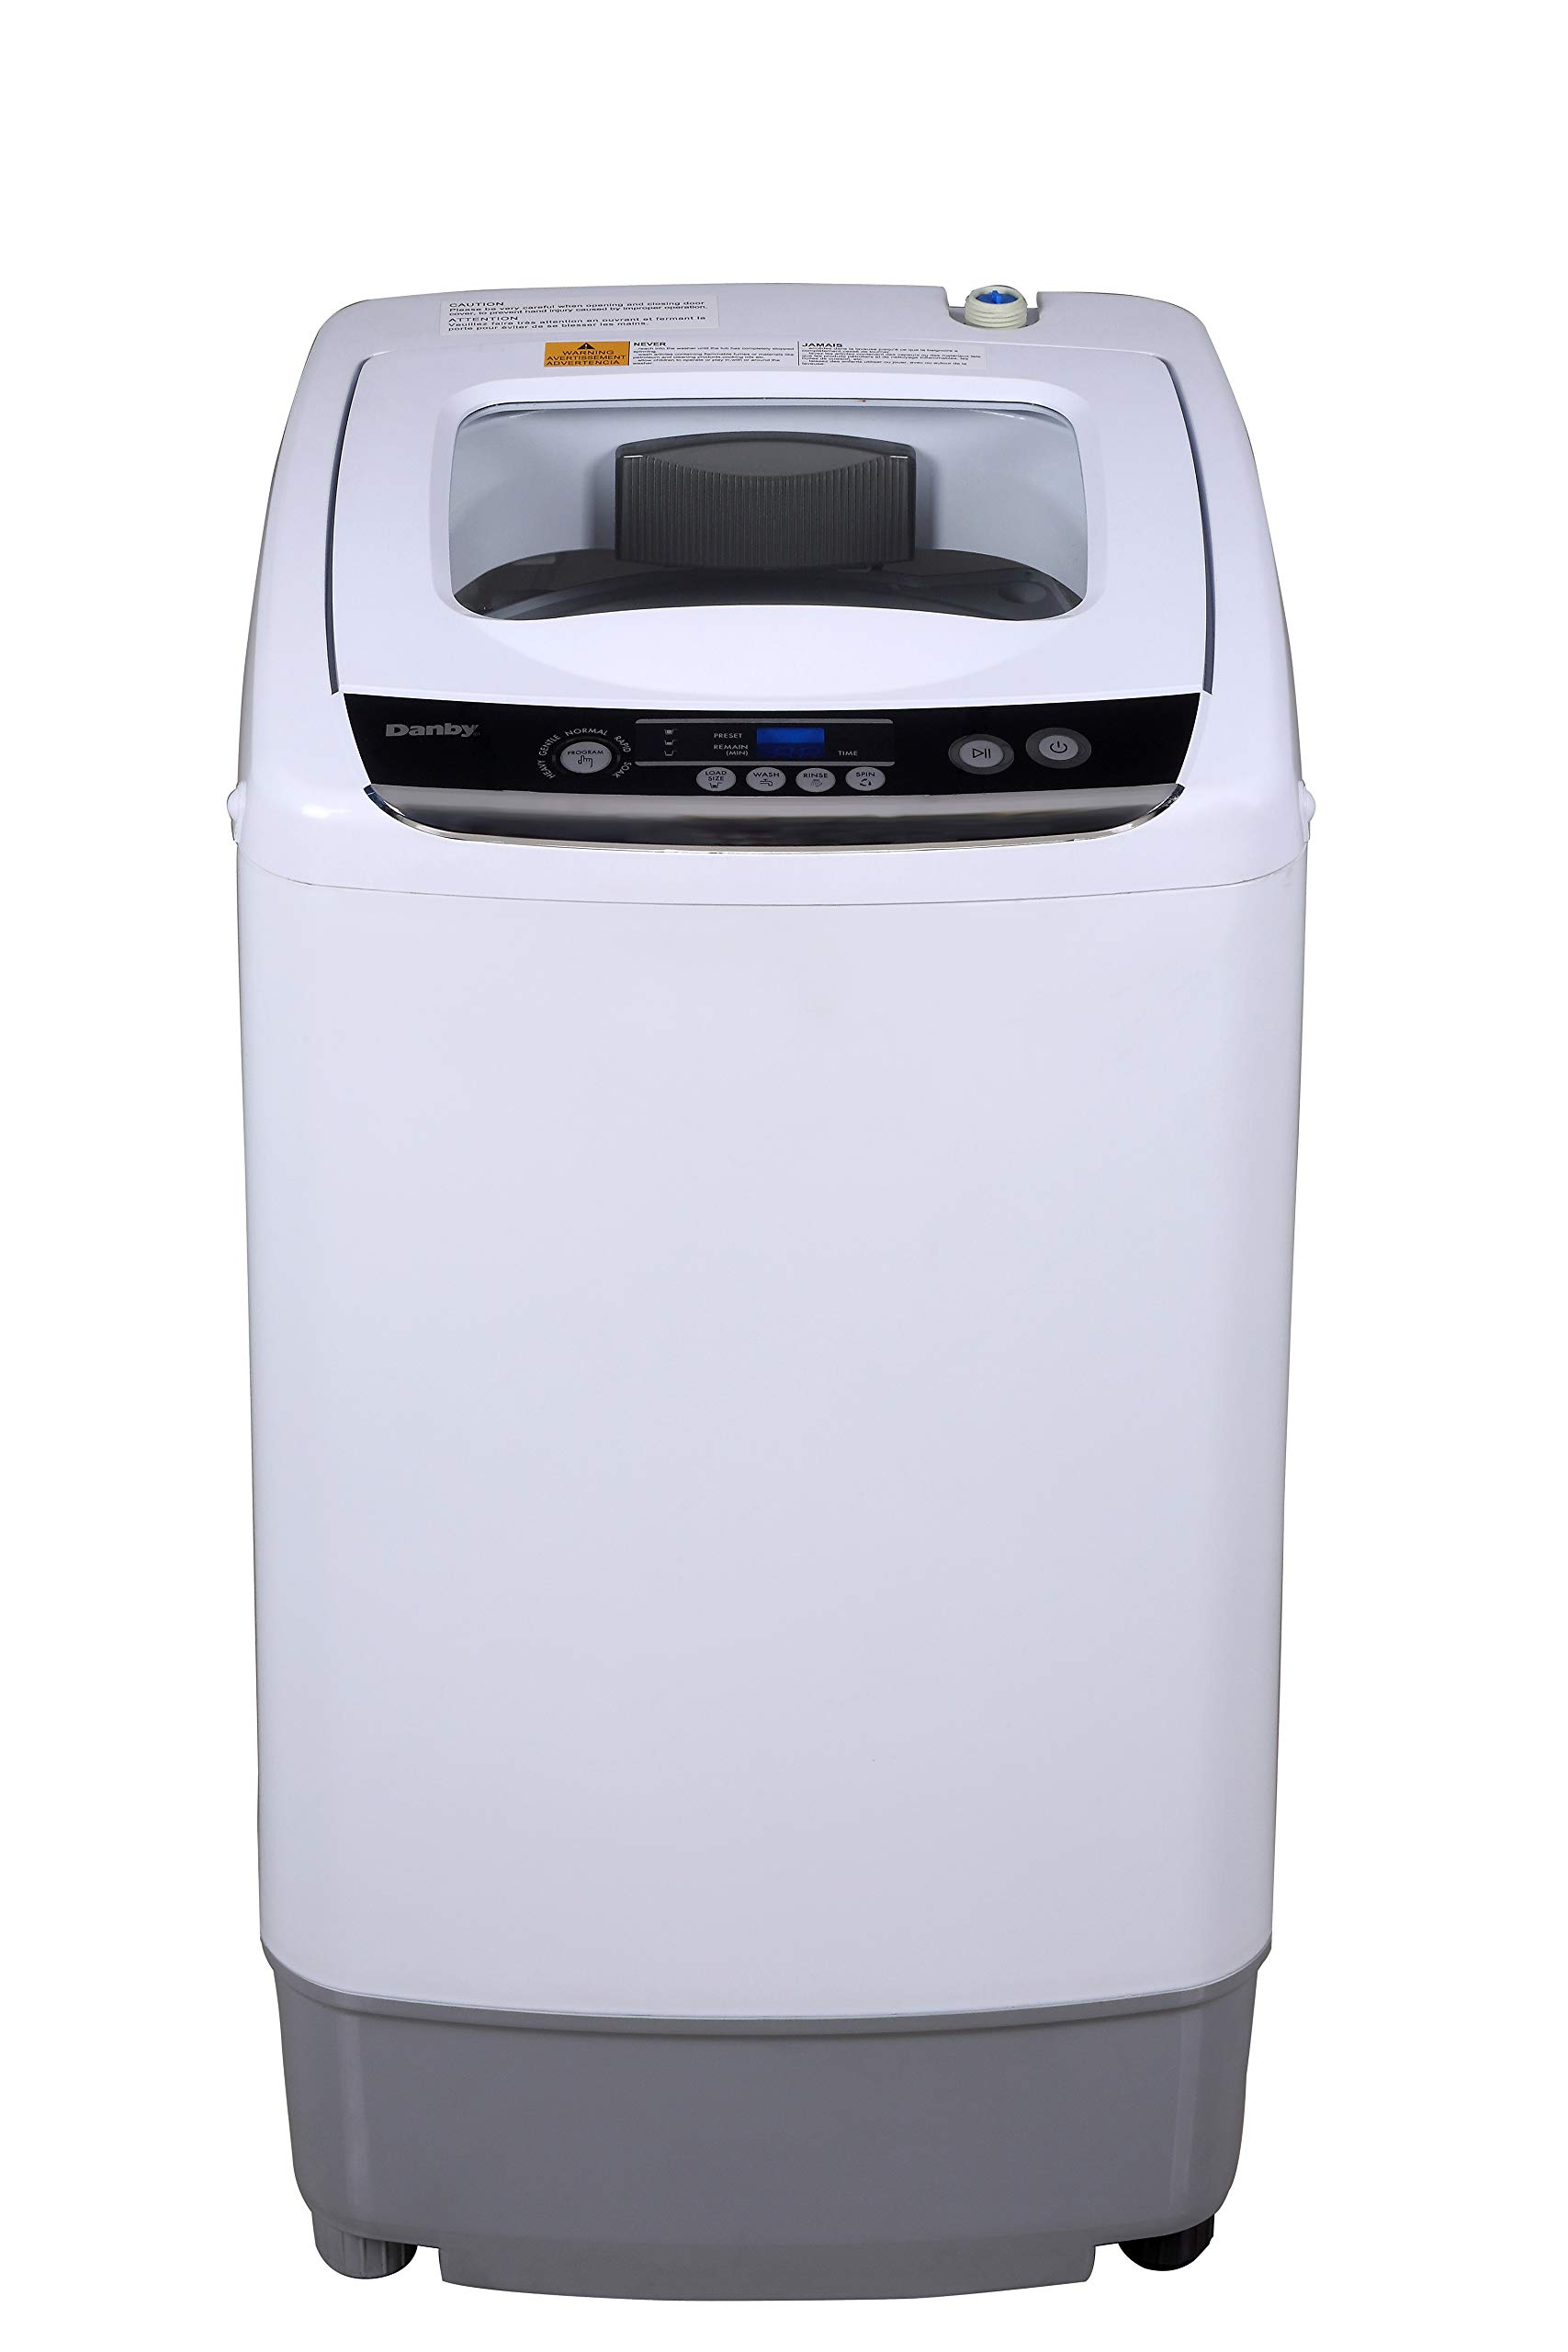 Danby DWM030WDB-6 0.9 Cu.Ft. Washing Machine in White-Compact Top Load Washer for Apartments, Small Spaces